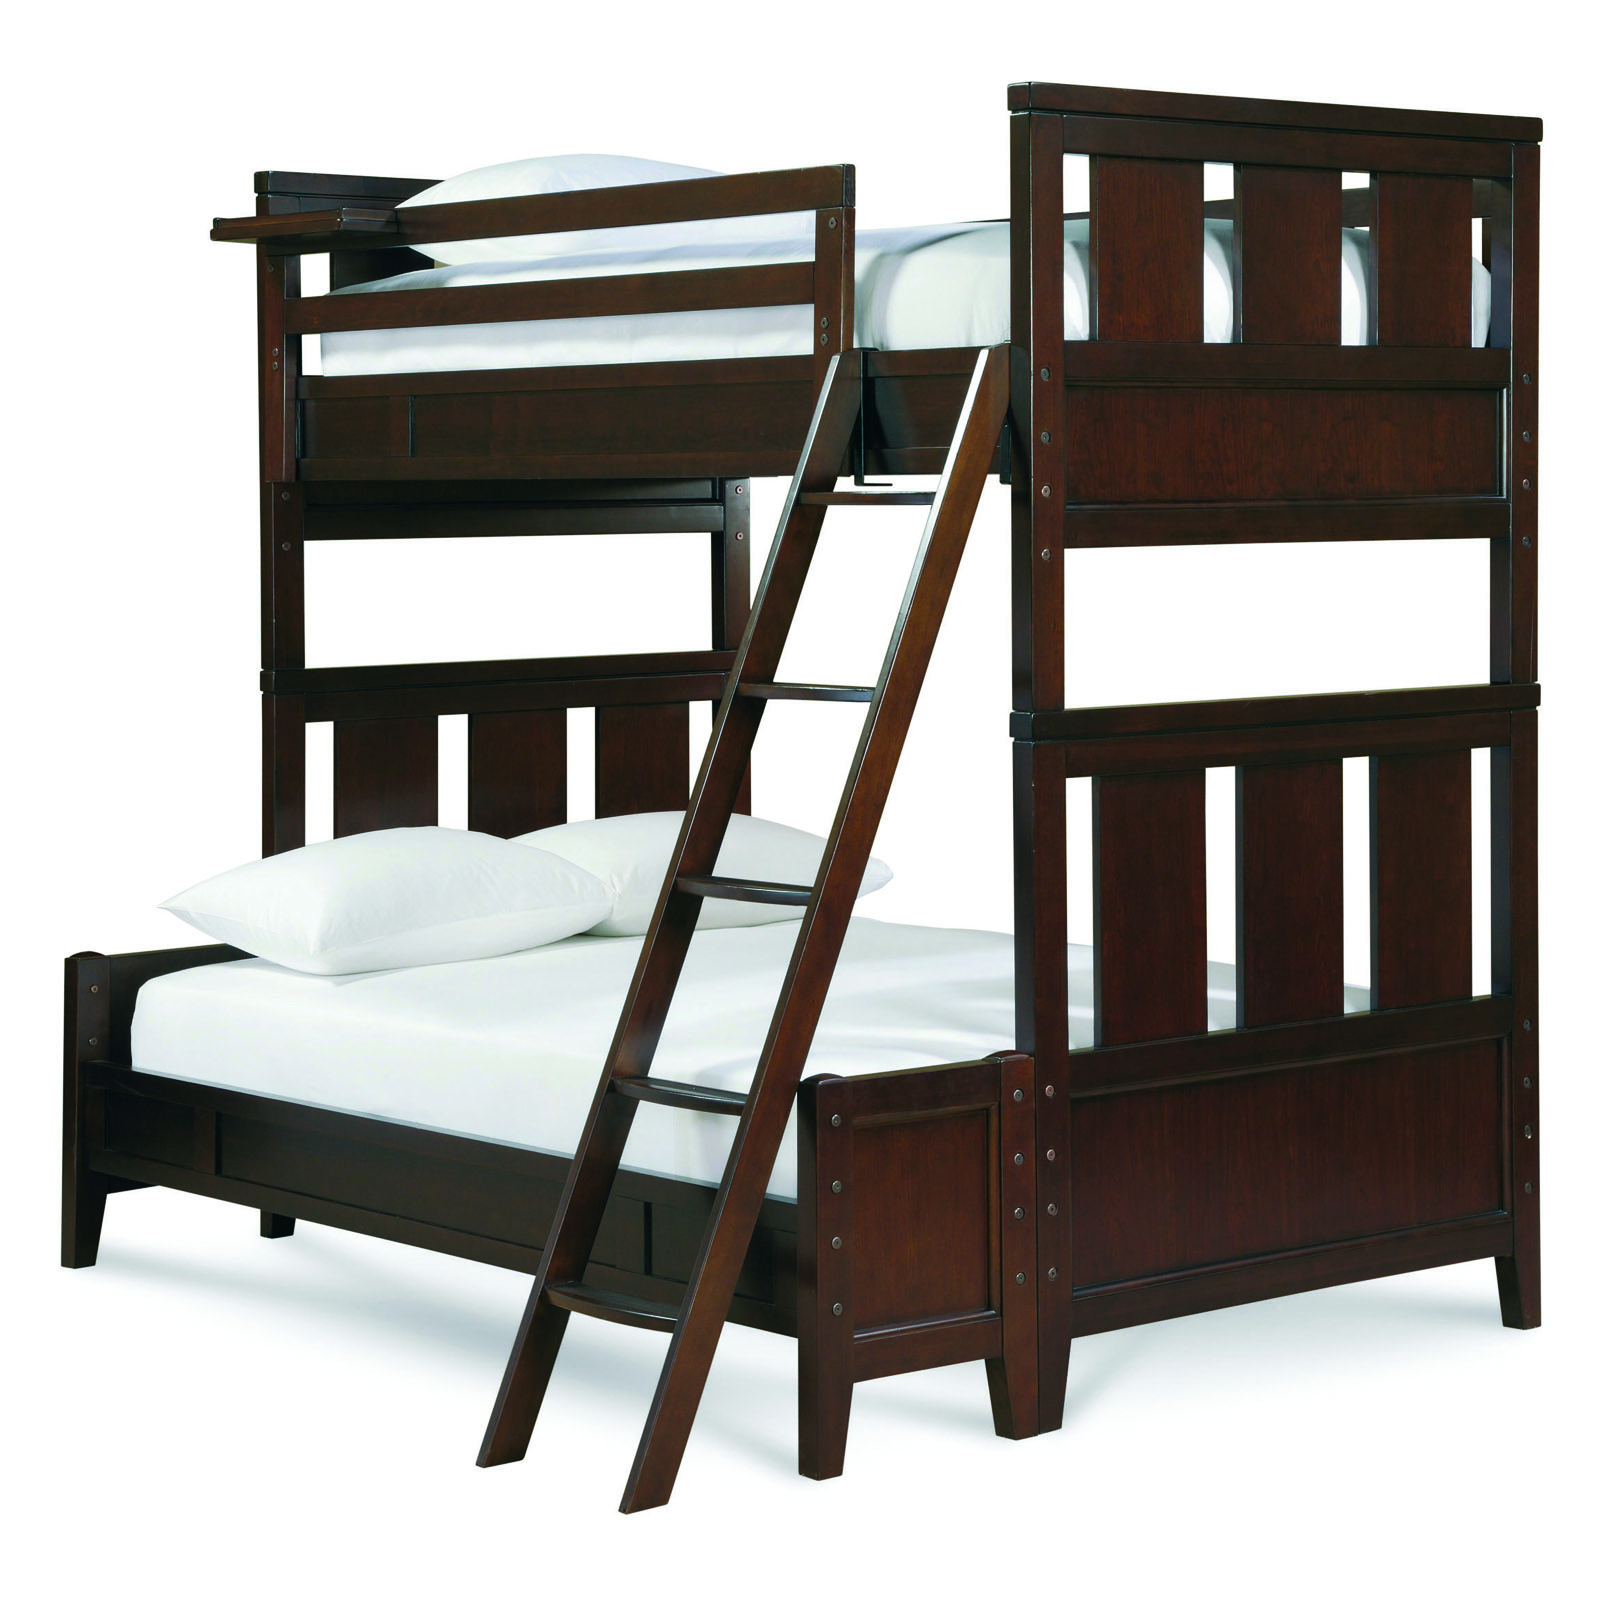 smartstuff free style twin over full bunk bed at hayneedle. Black Bedroom Furniture Sets. Home Design Ideas